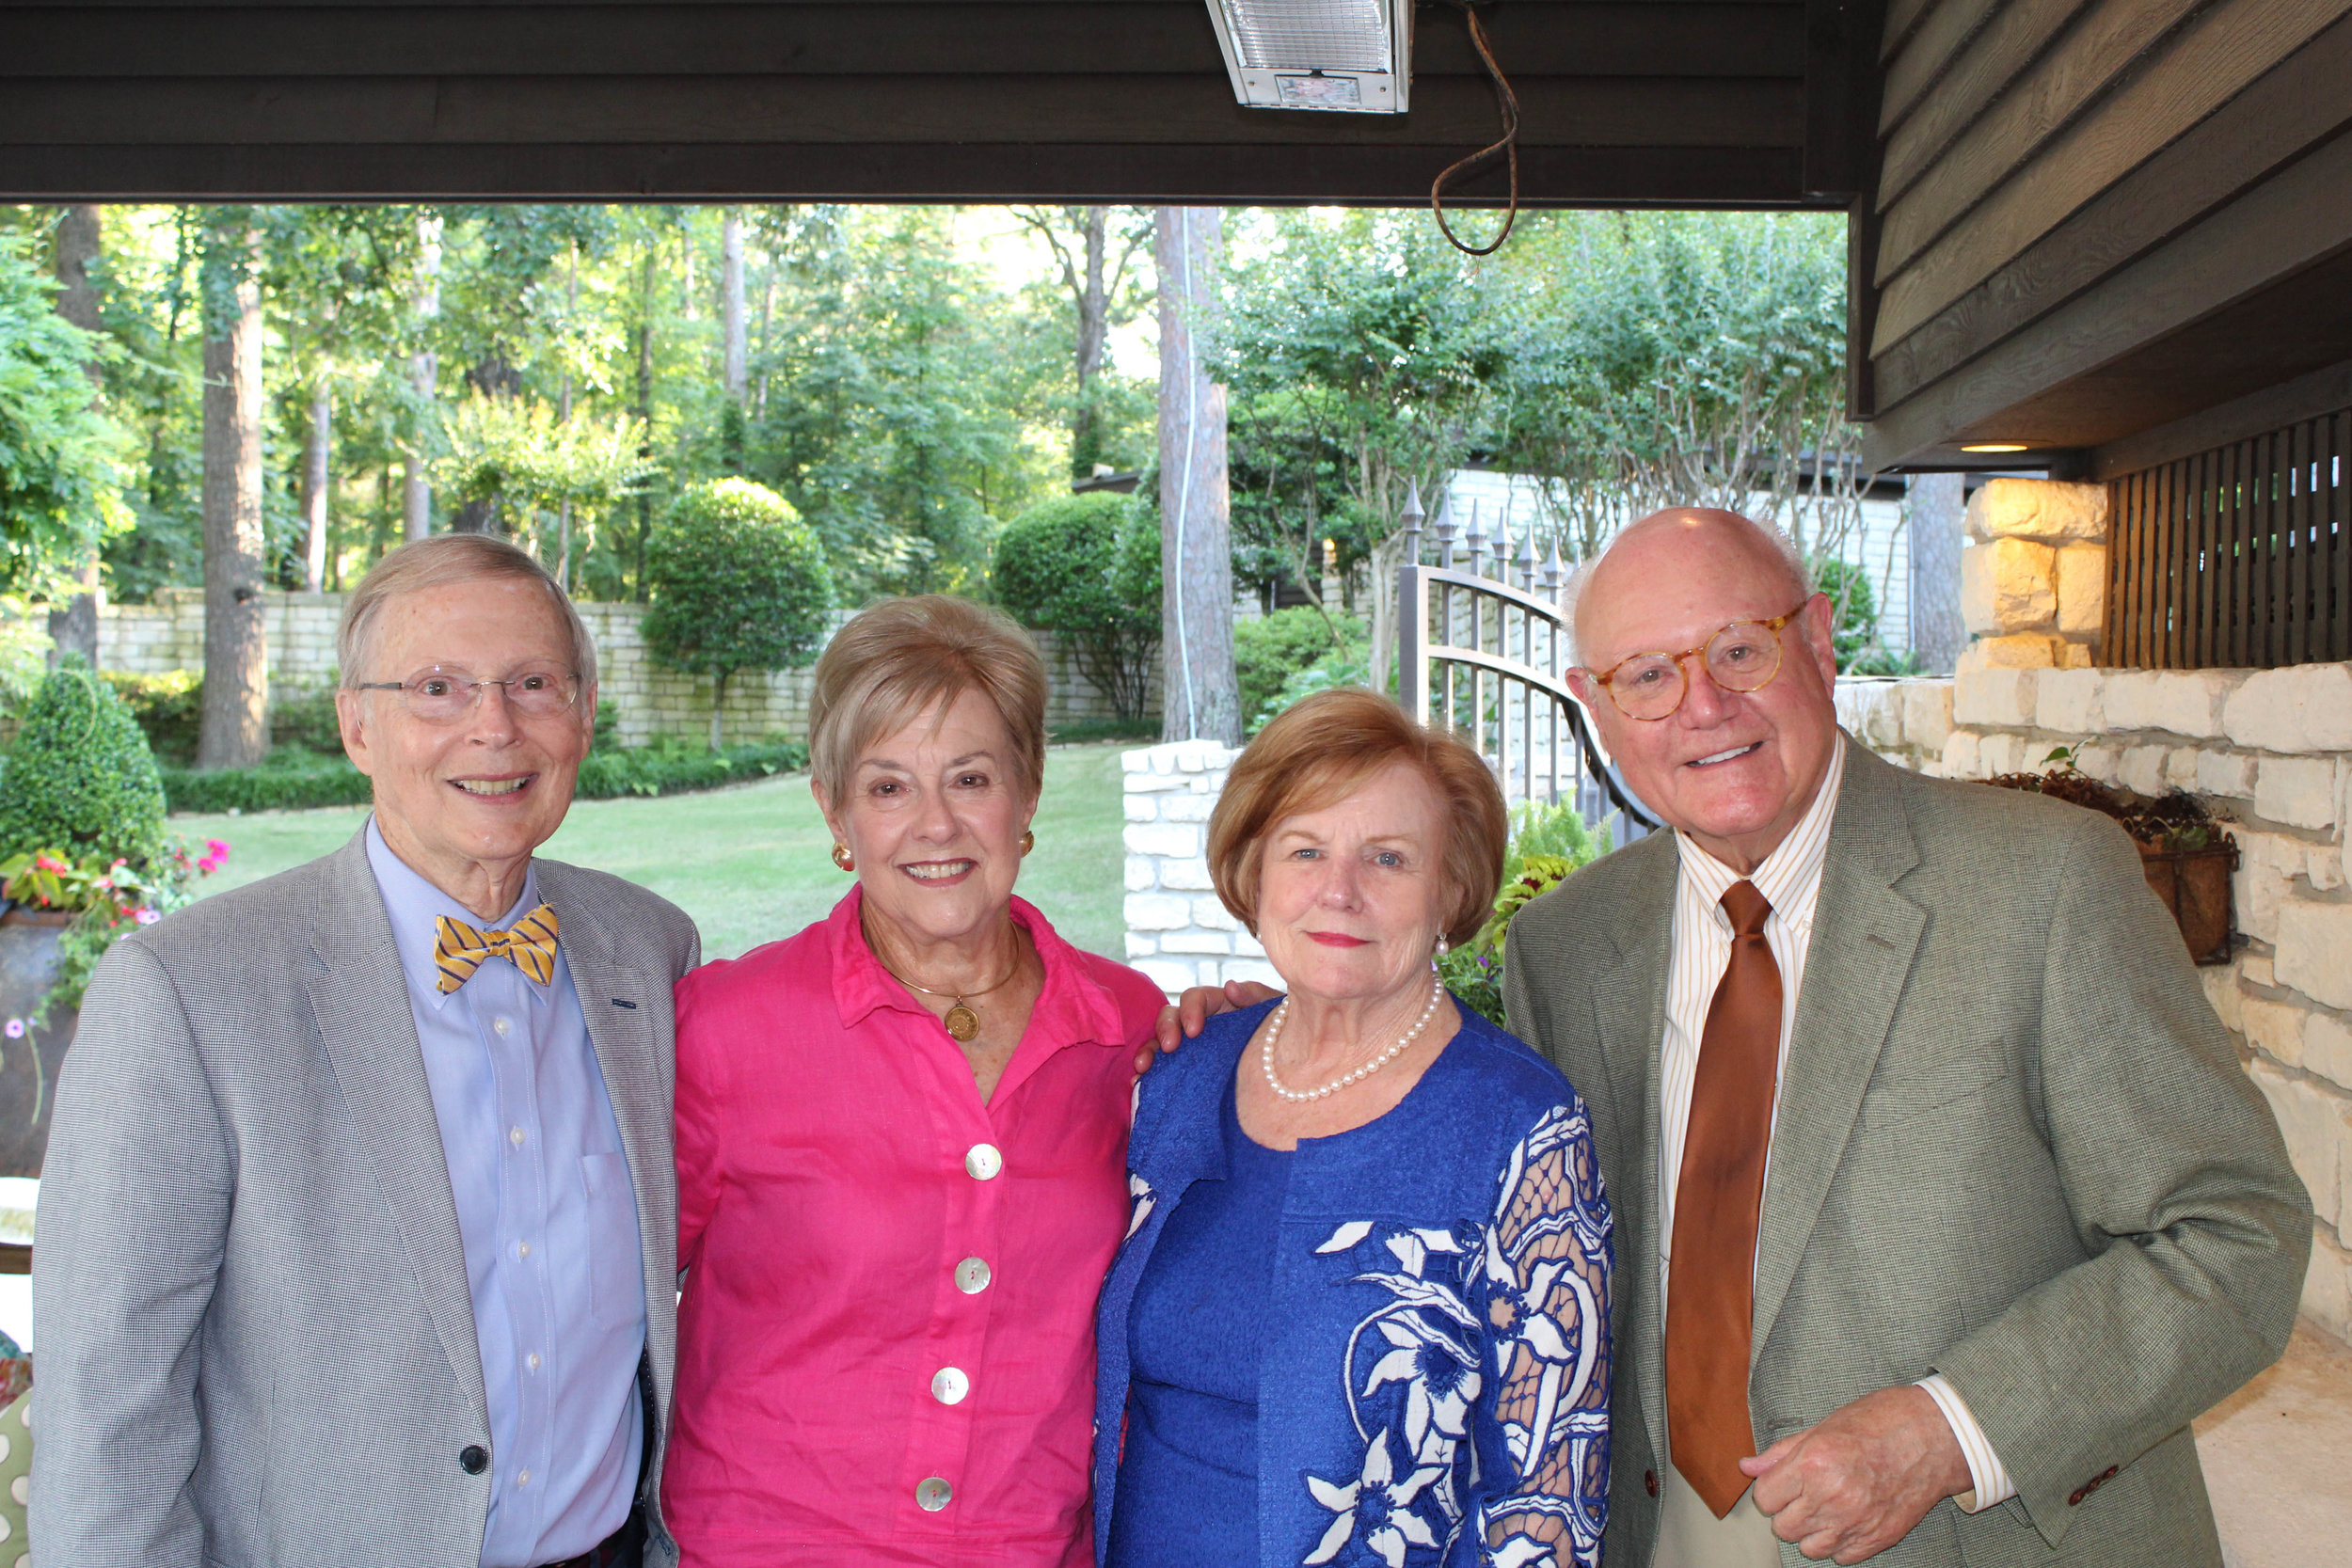 Bill and Rosaline Griffin with Kathleen and James Verschoyle